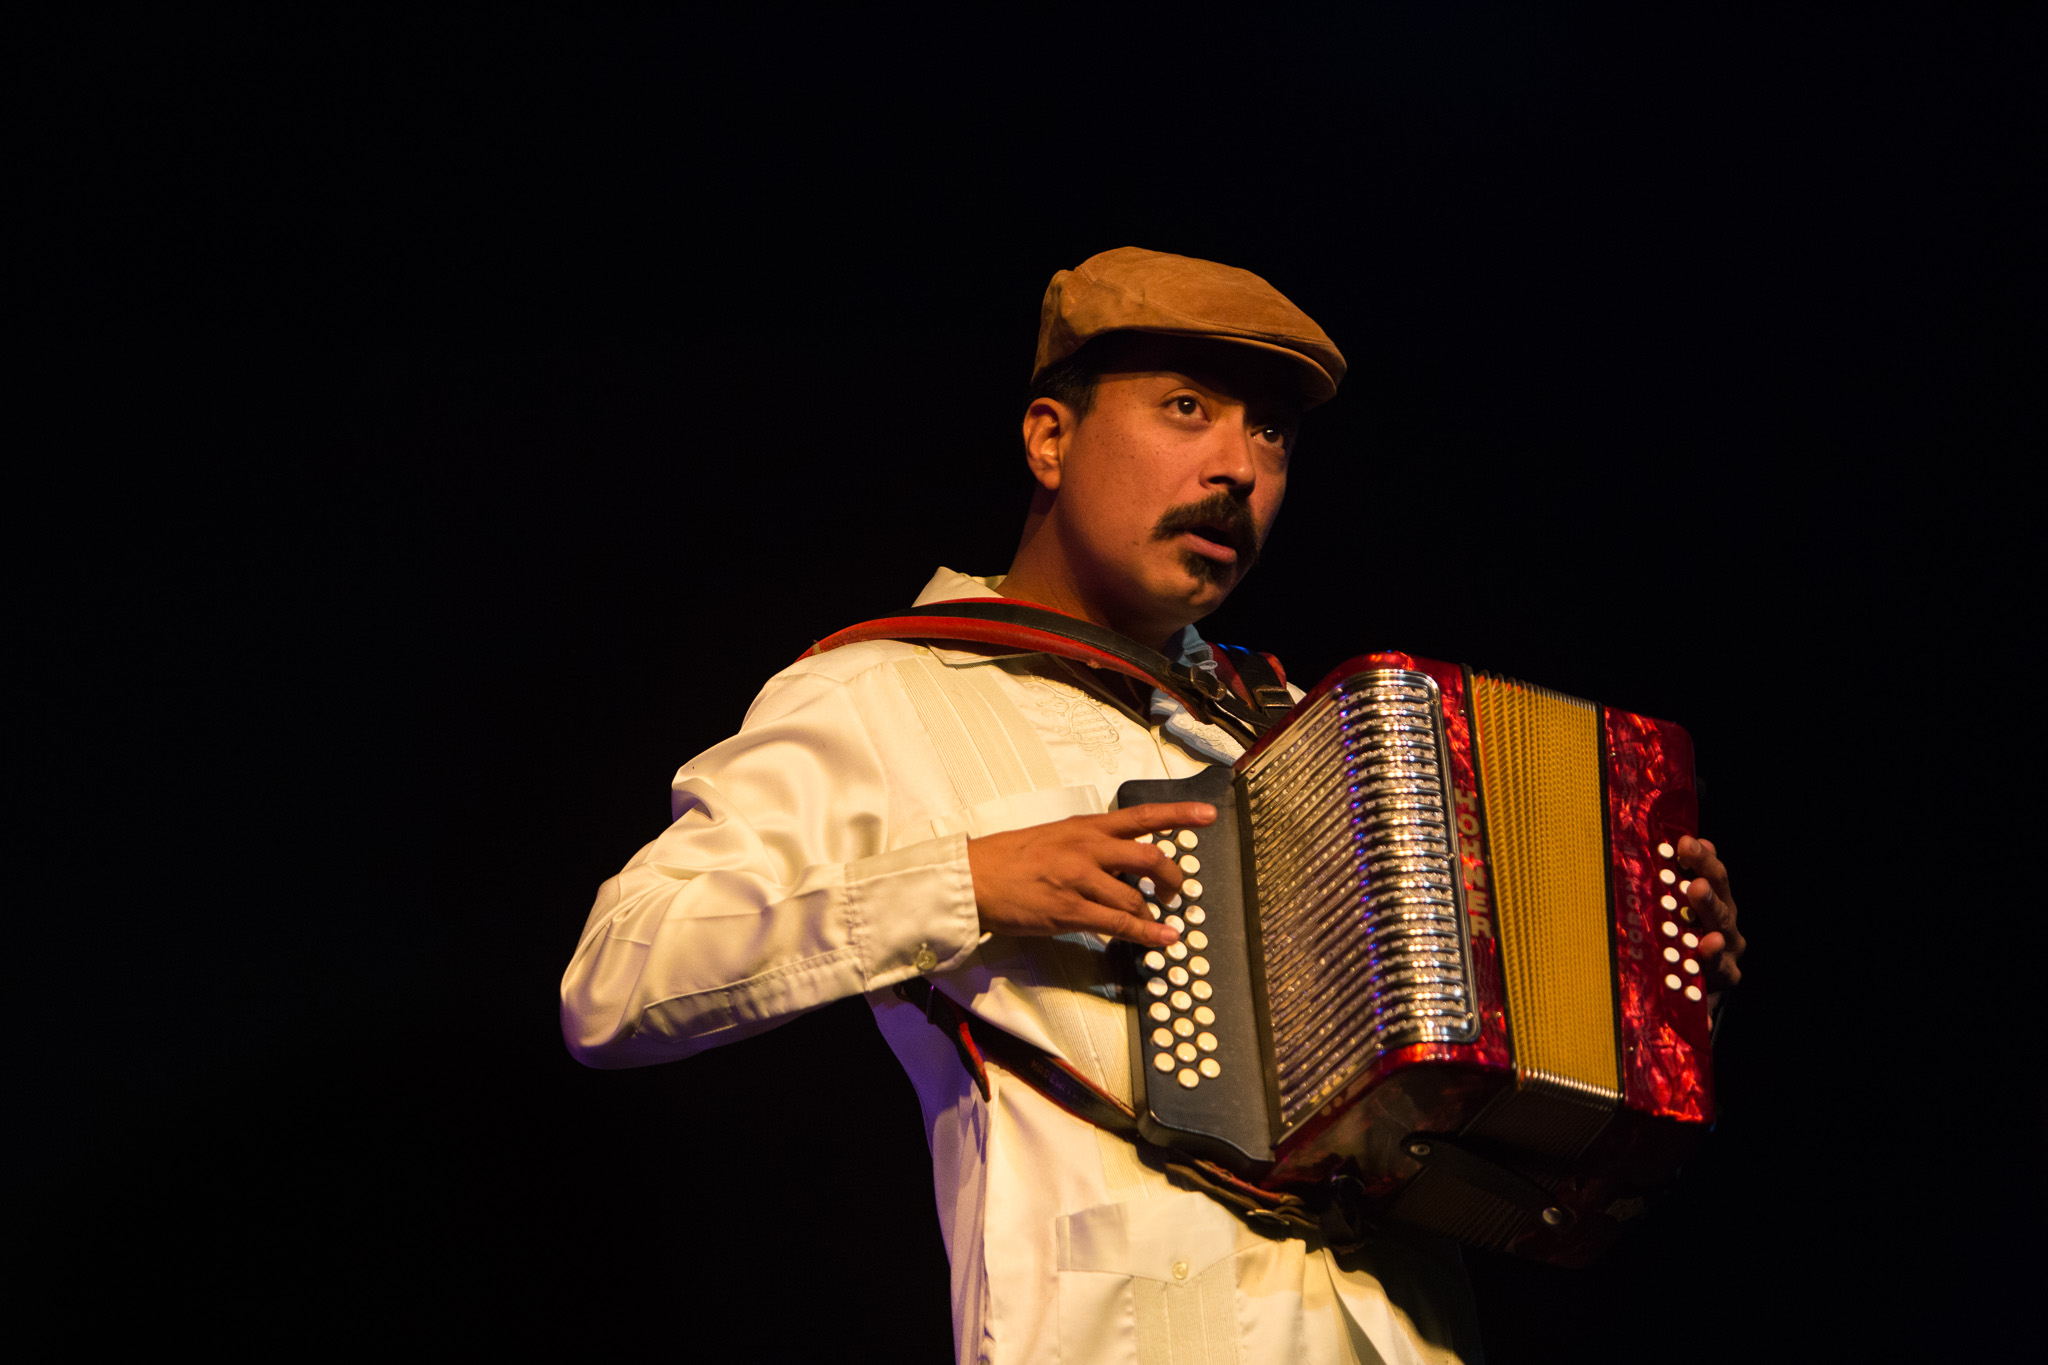 Nicolas Valdez opens up the sound of the accordion for the audience members. Photo by Scott Ball.